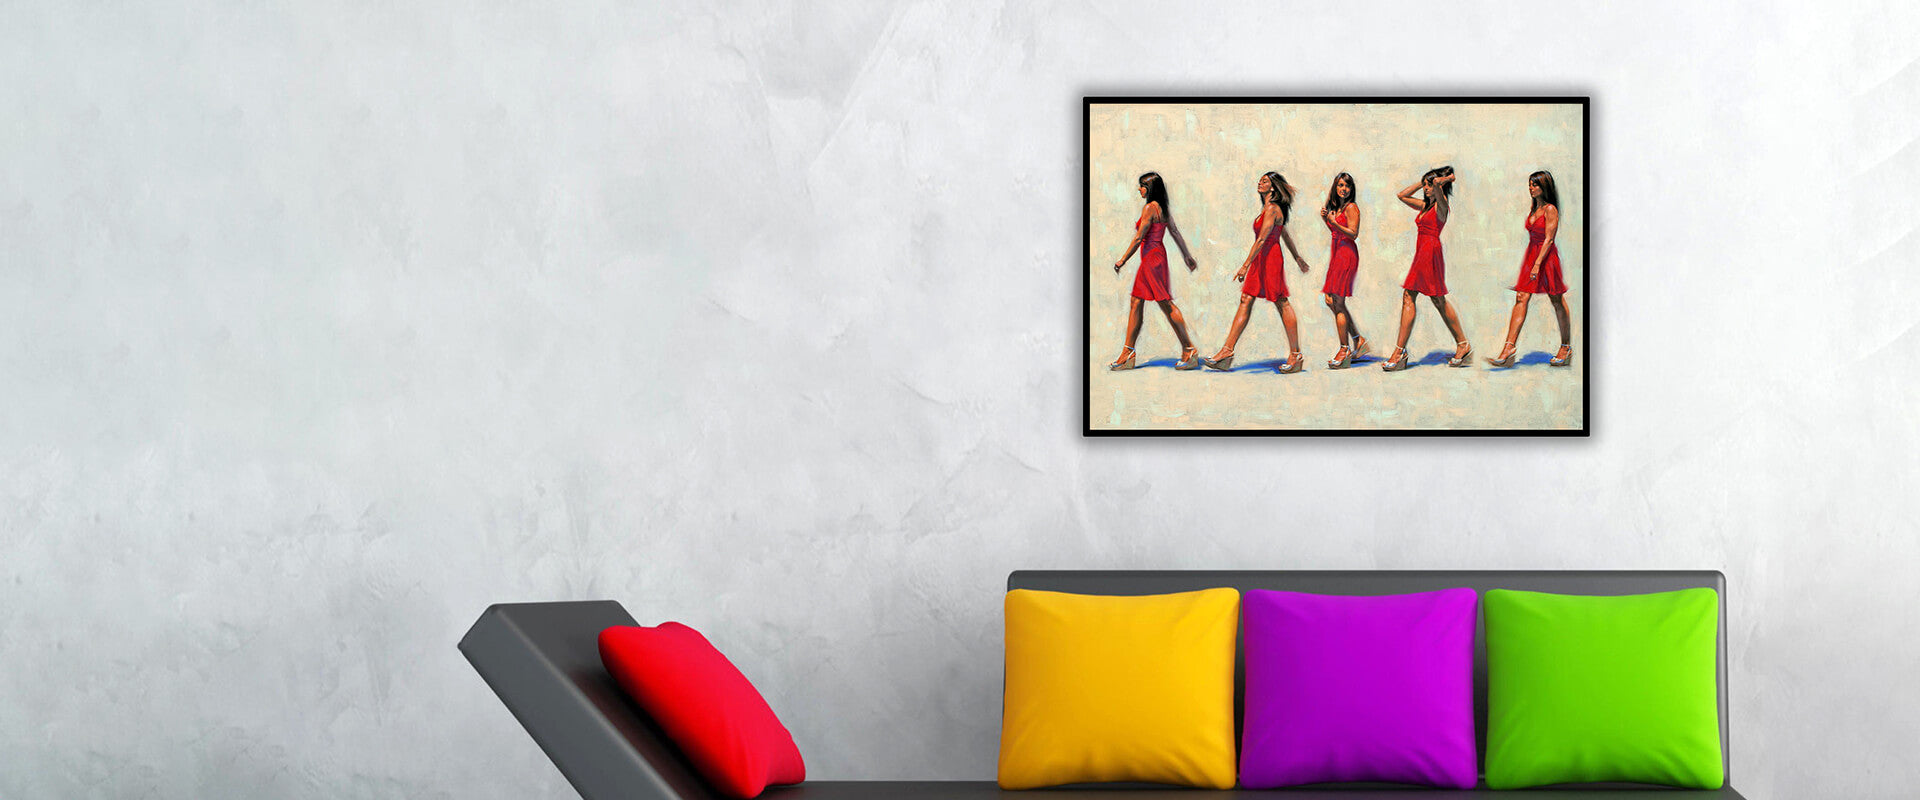 Posters — Diwali Gifts | Buy Posters, Frames, Canvas, Digital Art & Large Size Prints